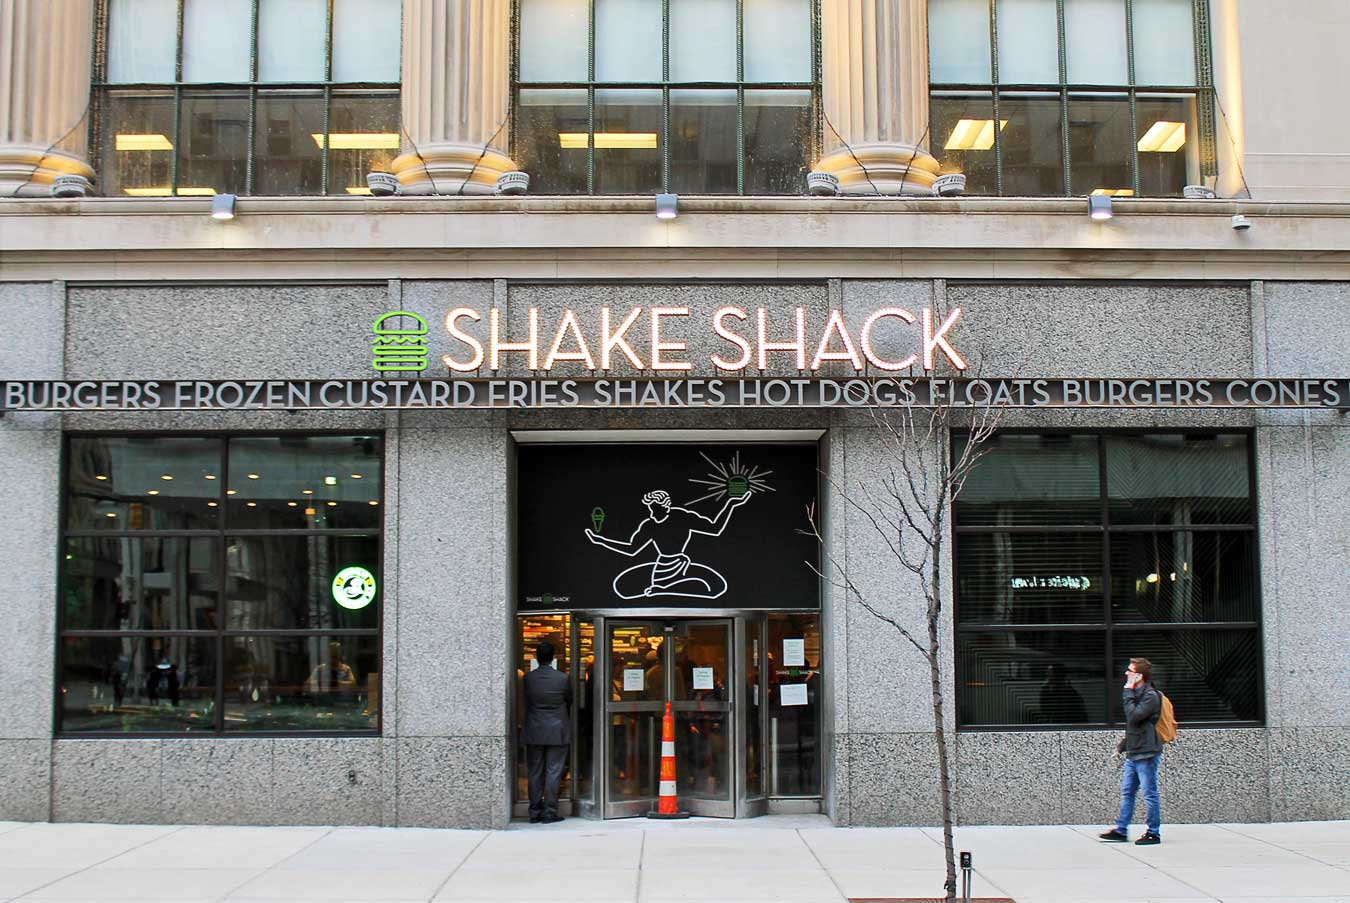 Shake Shack Detroit Might Be Your New Favorite Burger Spot /// - From sandwiches, fries, and shakes to local flavors and an awesome location, learn why long-time fans and newbies alike are sure to love the new Shake Shack in Downtown Detroit, Michigan. /// via Wading in Big Shoes